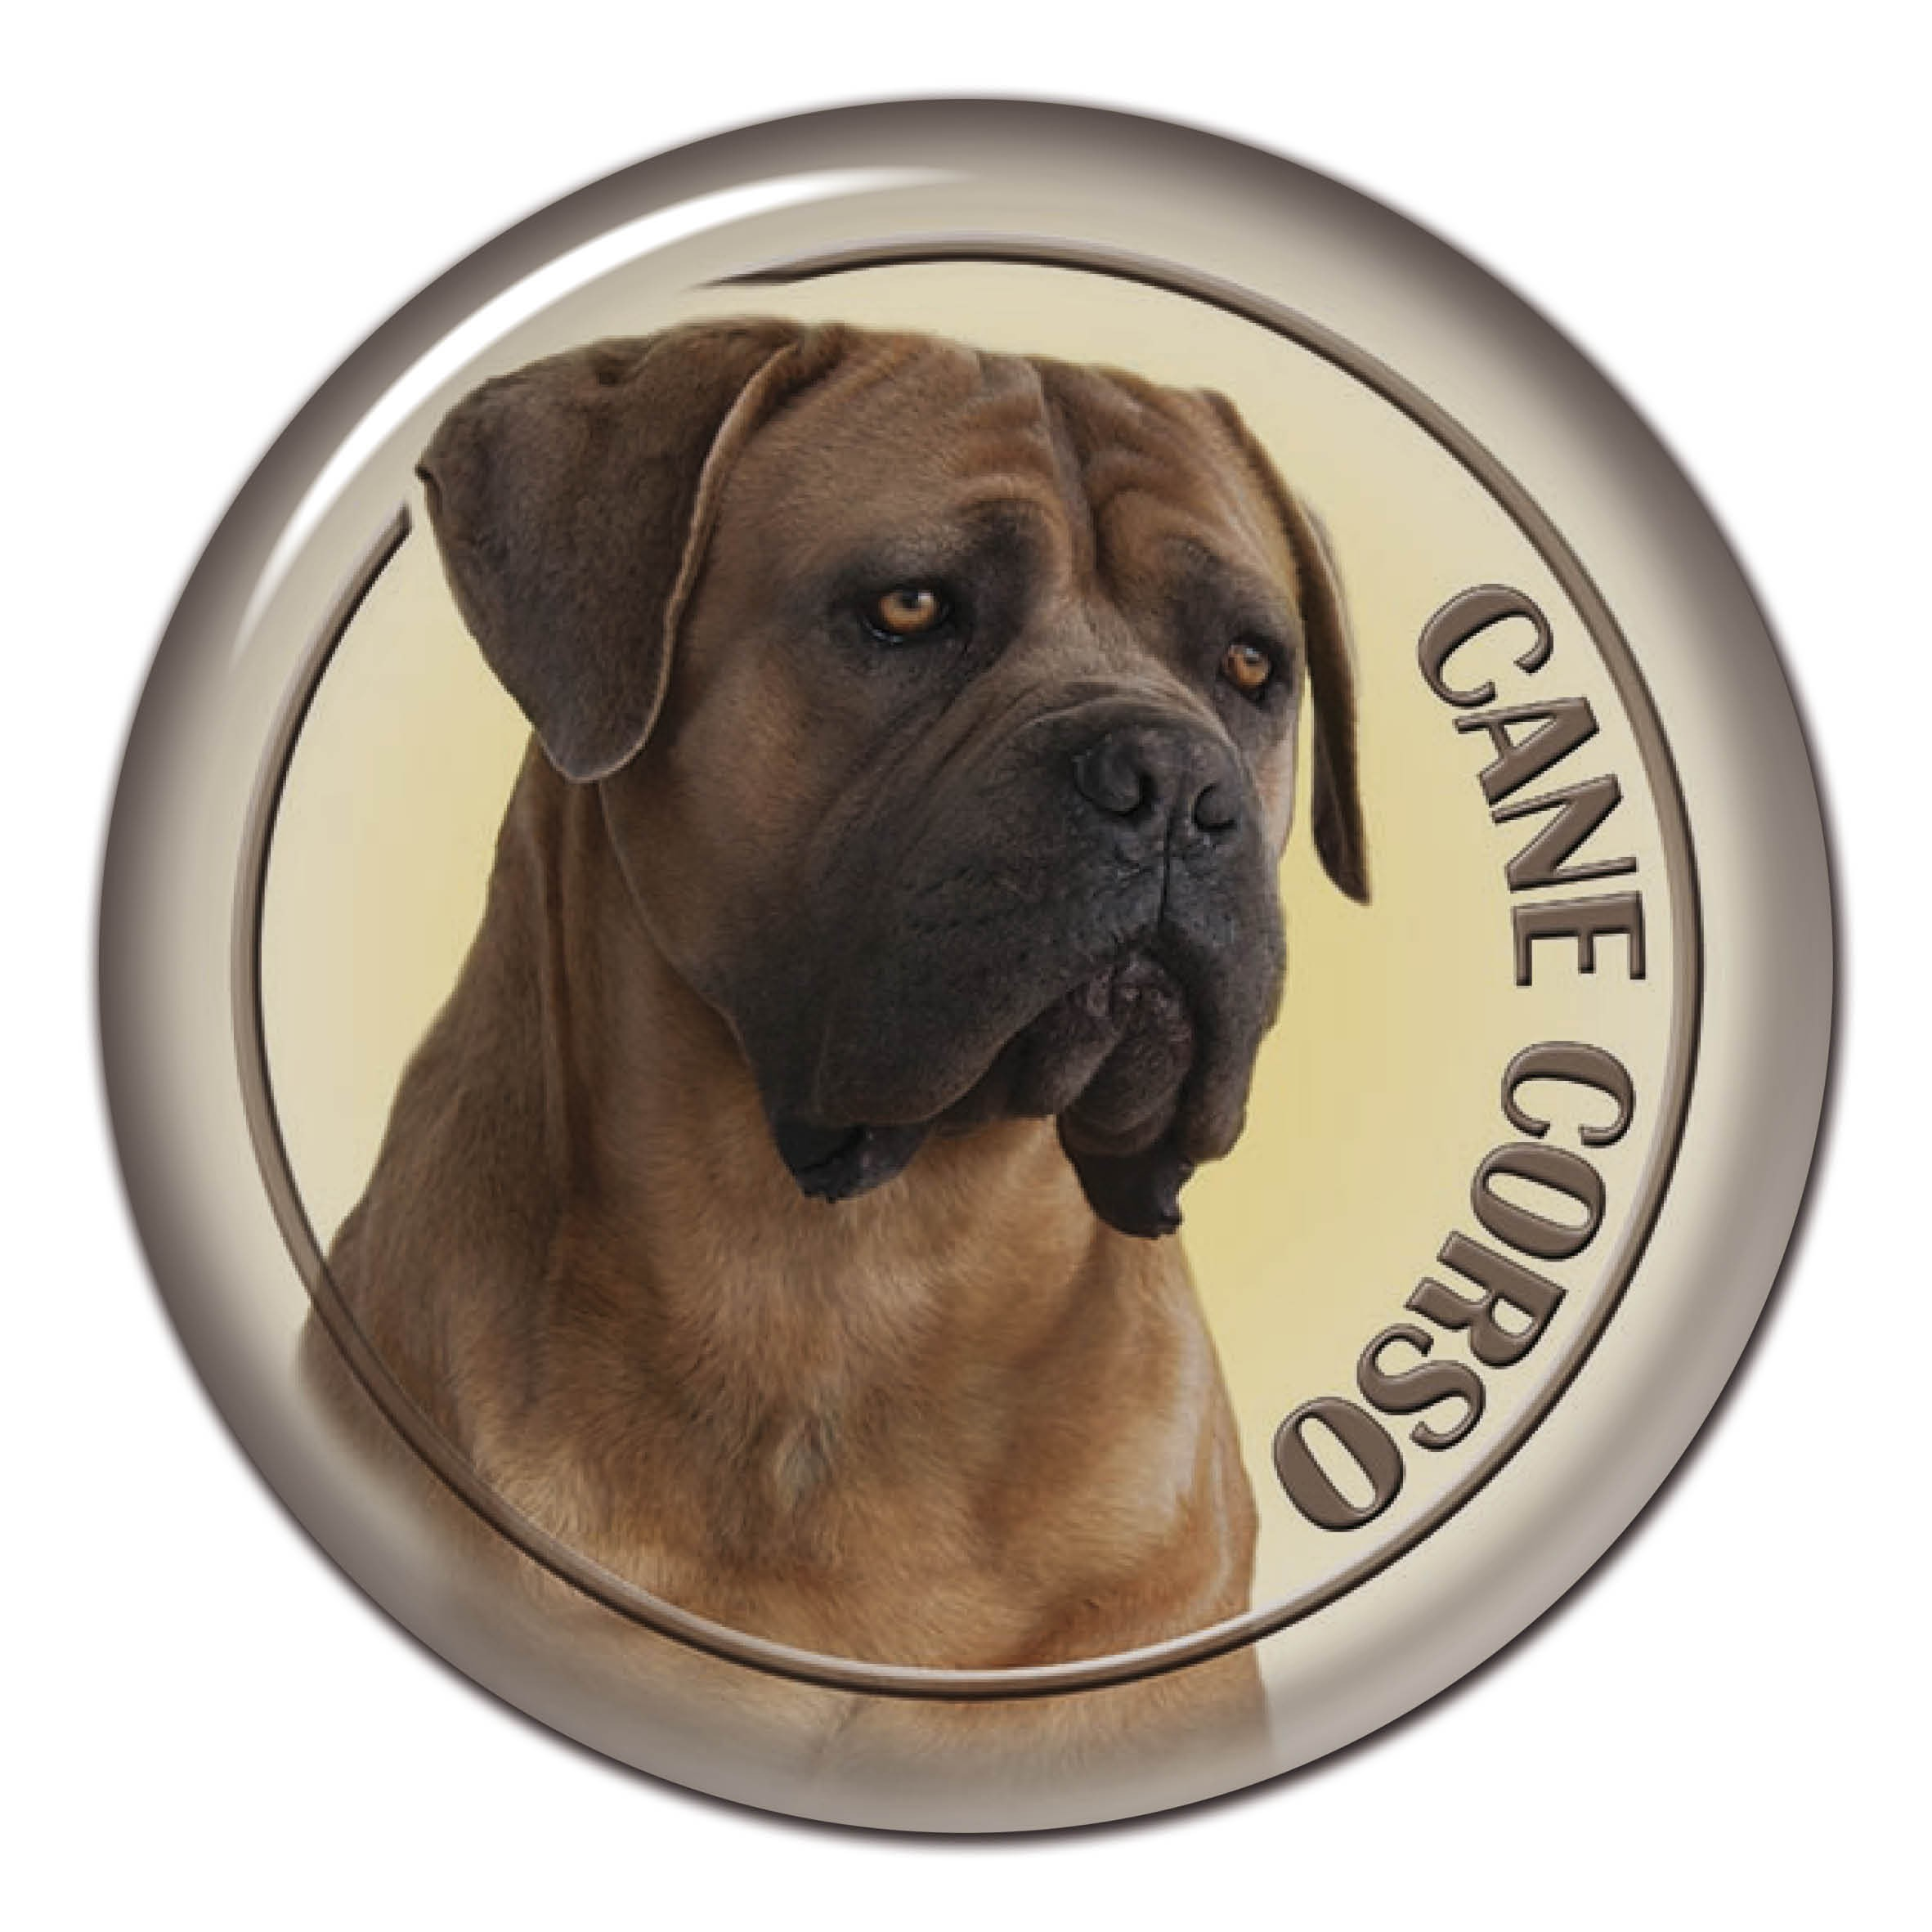 3d Sticker Cane Corso 103 C From Alldogstickerscom Dog Breed